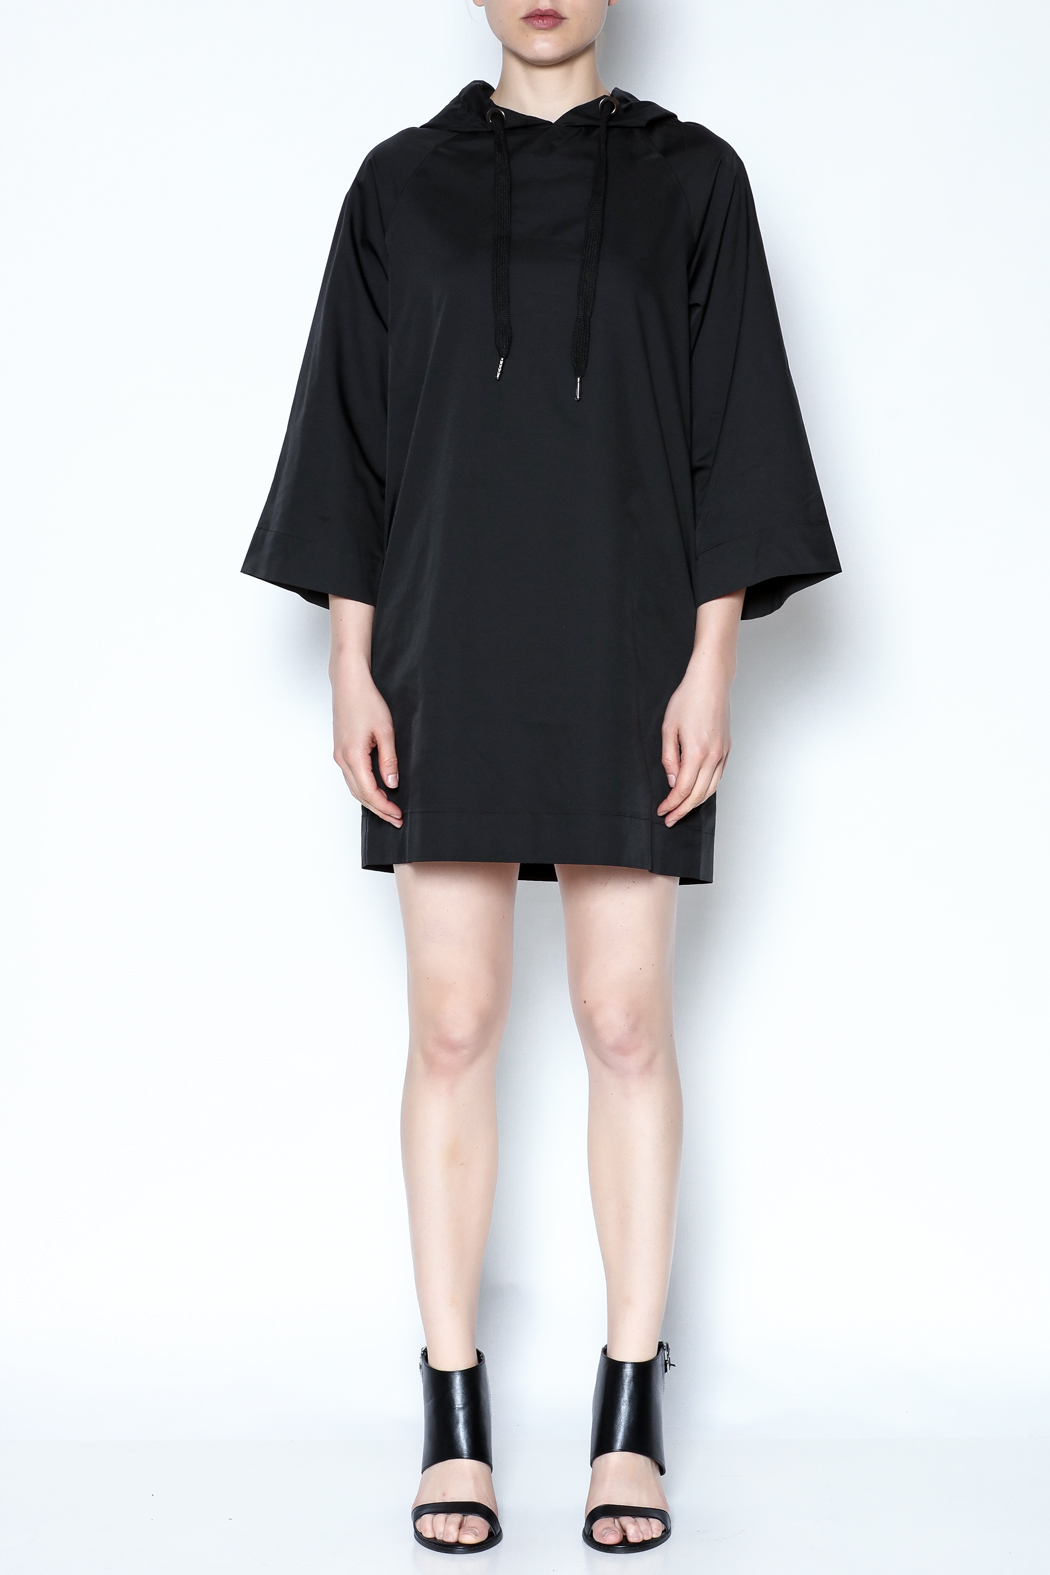 AMT Sporty Black Dress - Front Full Image